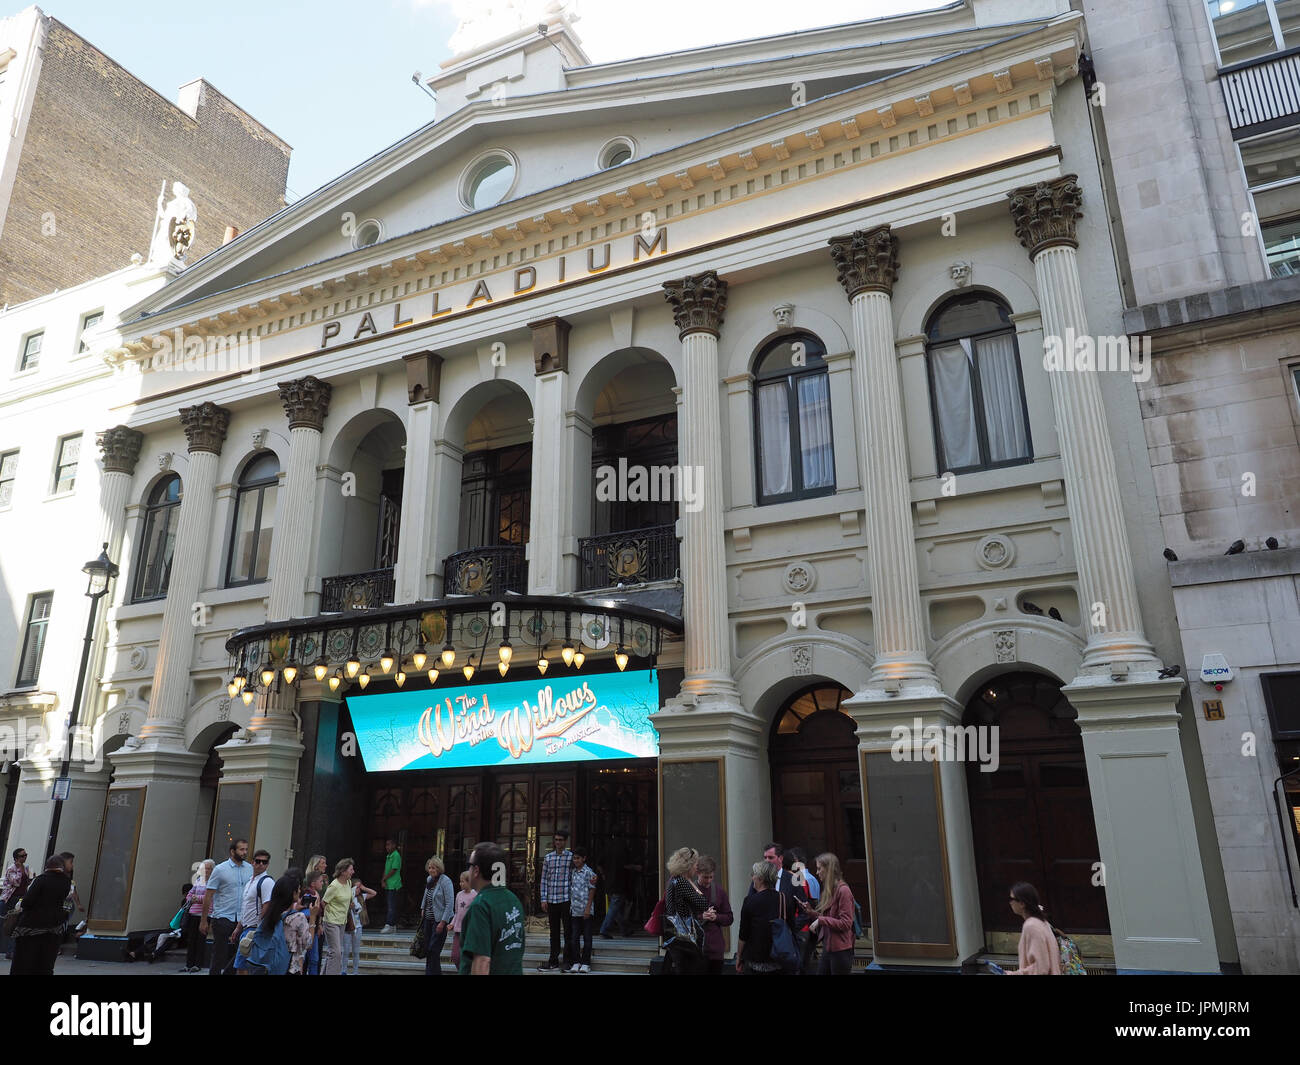 Front view of The London Palladium theatre in Argyll Street London - Stock Image